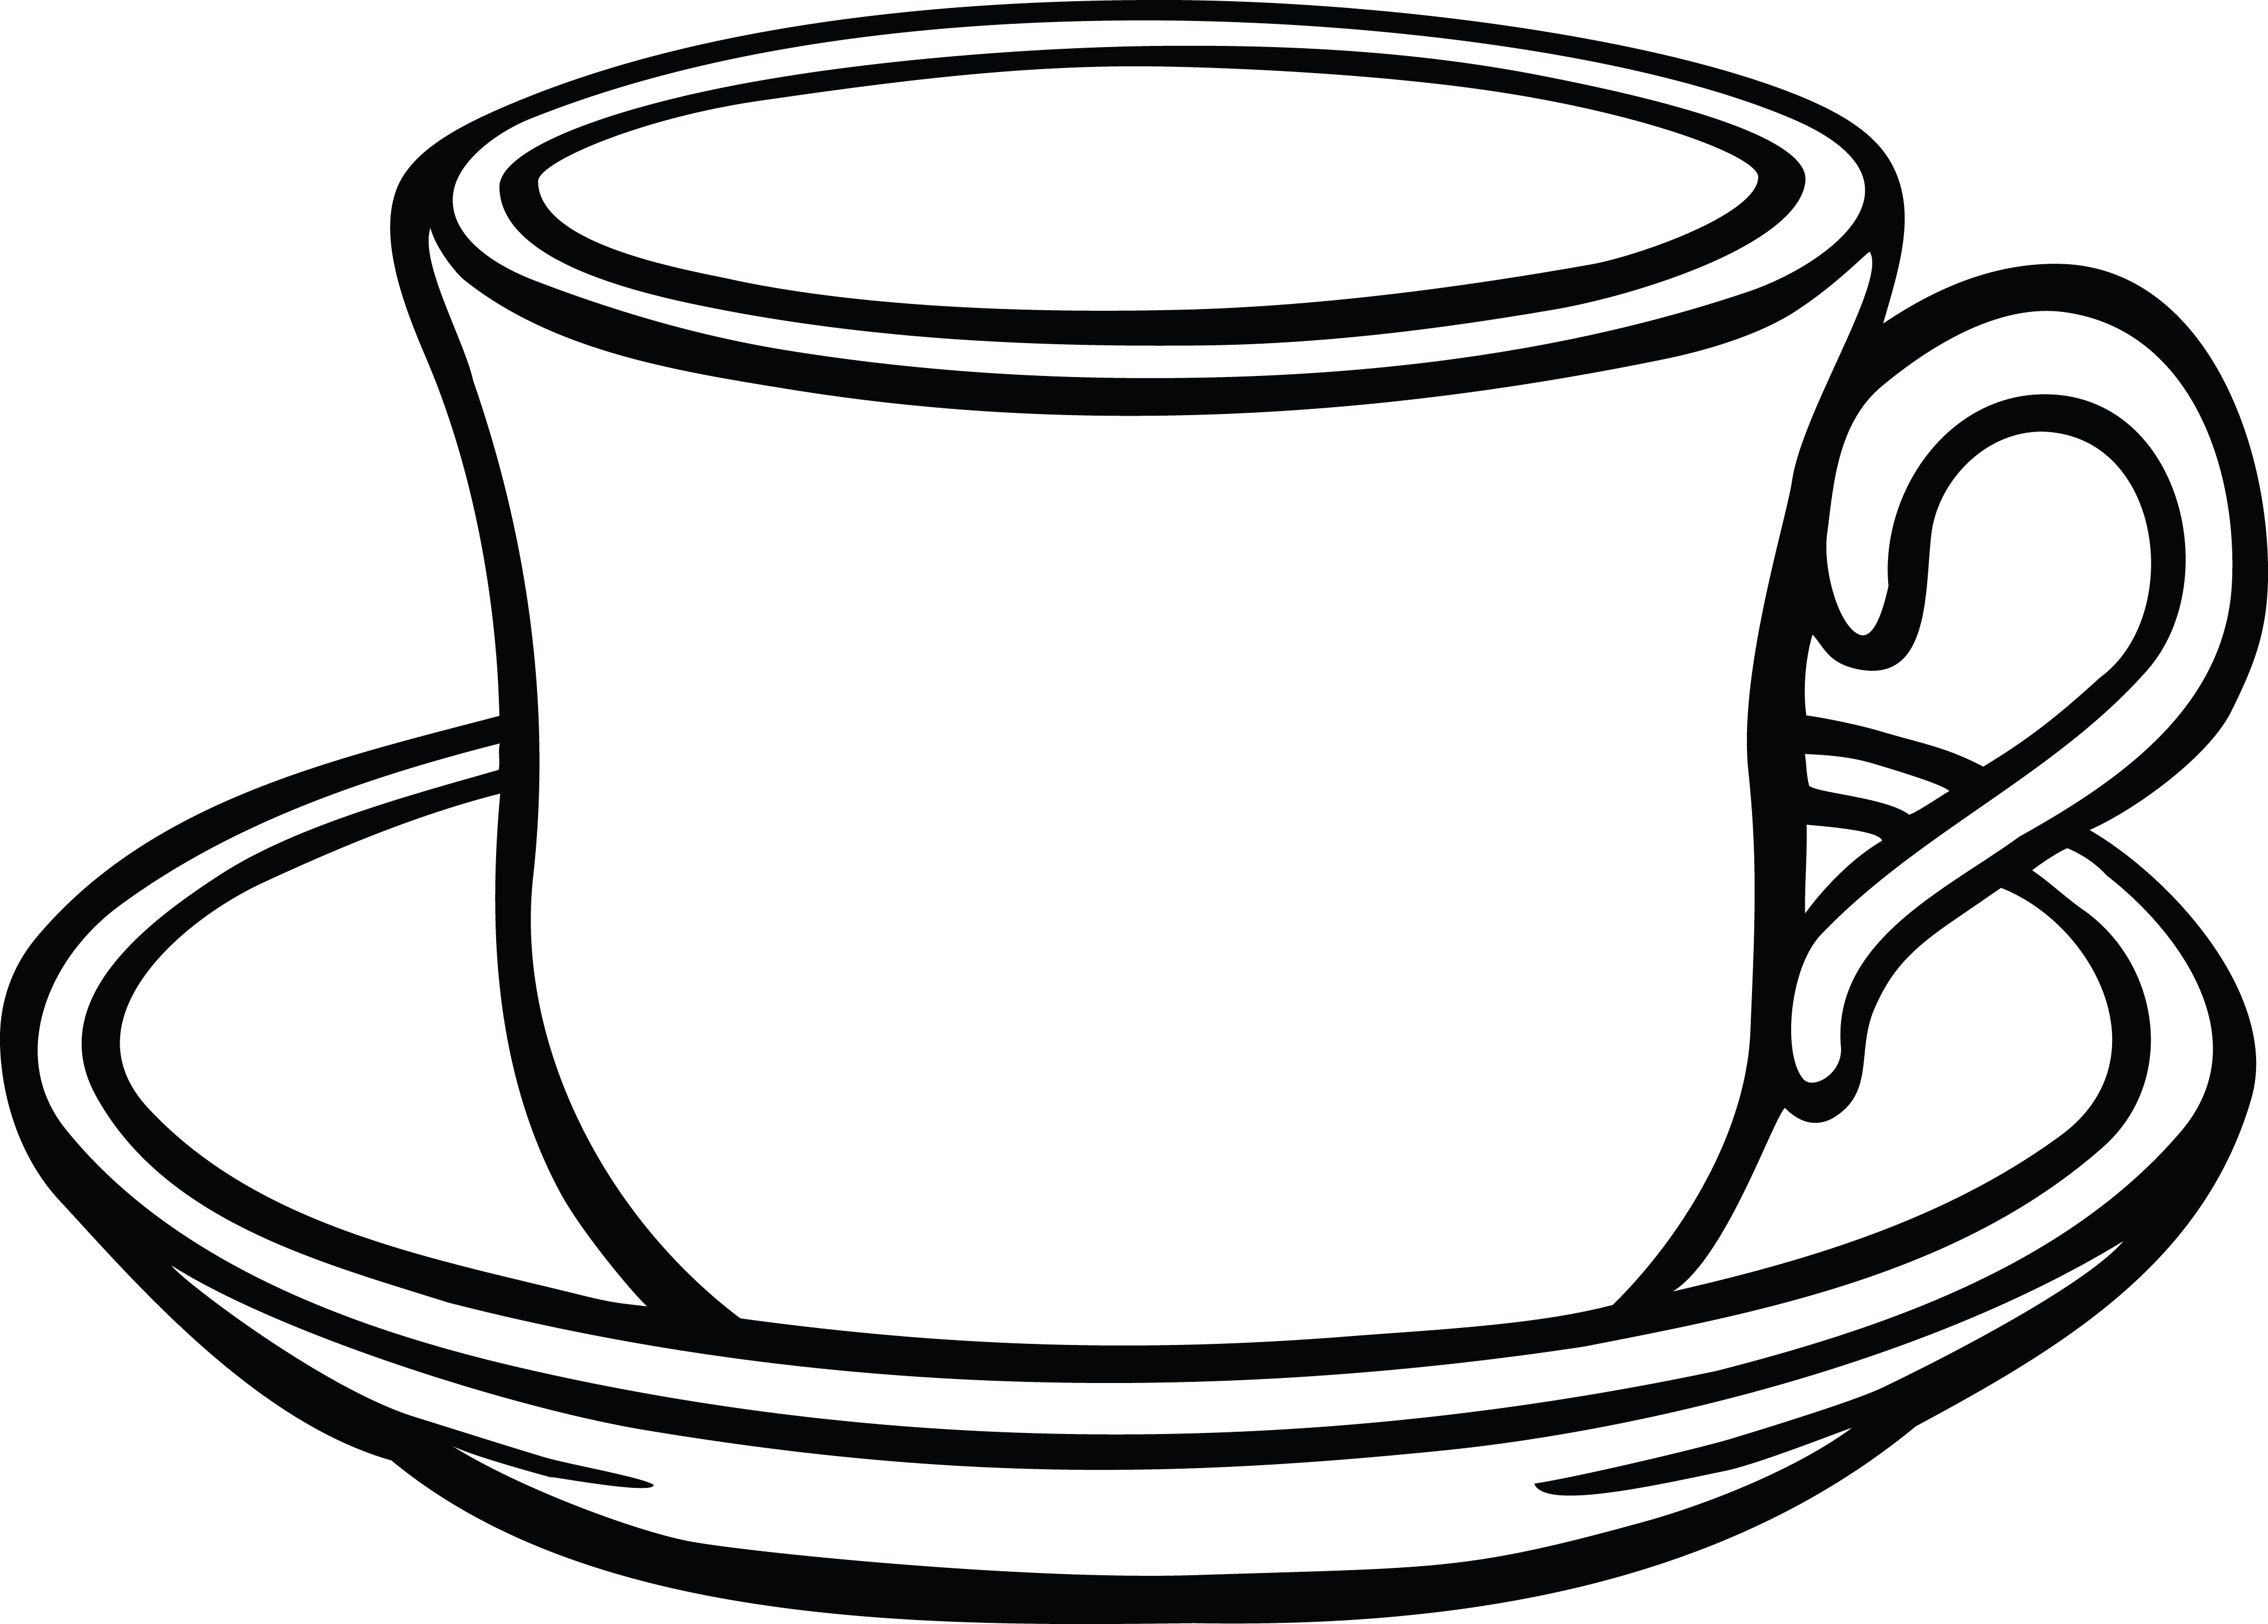 Cup And Saucer Drawing | Free download best Cup And Saucer ... picture download